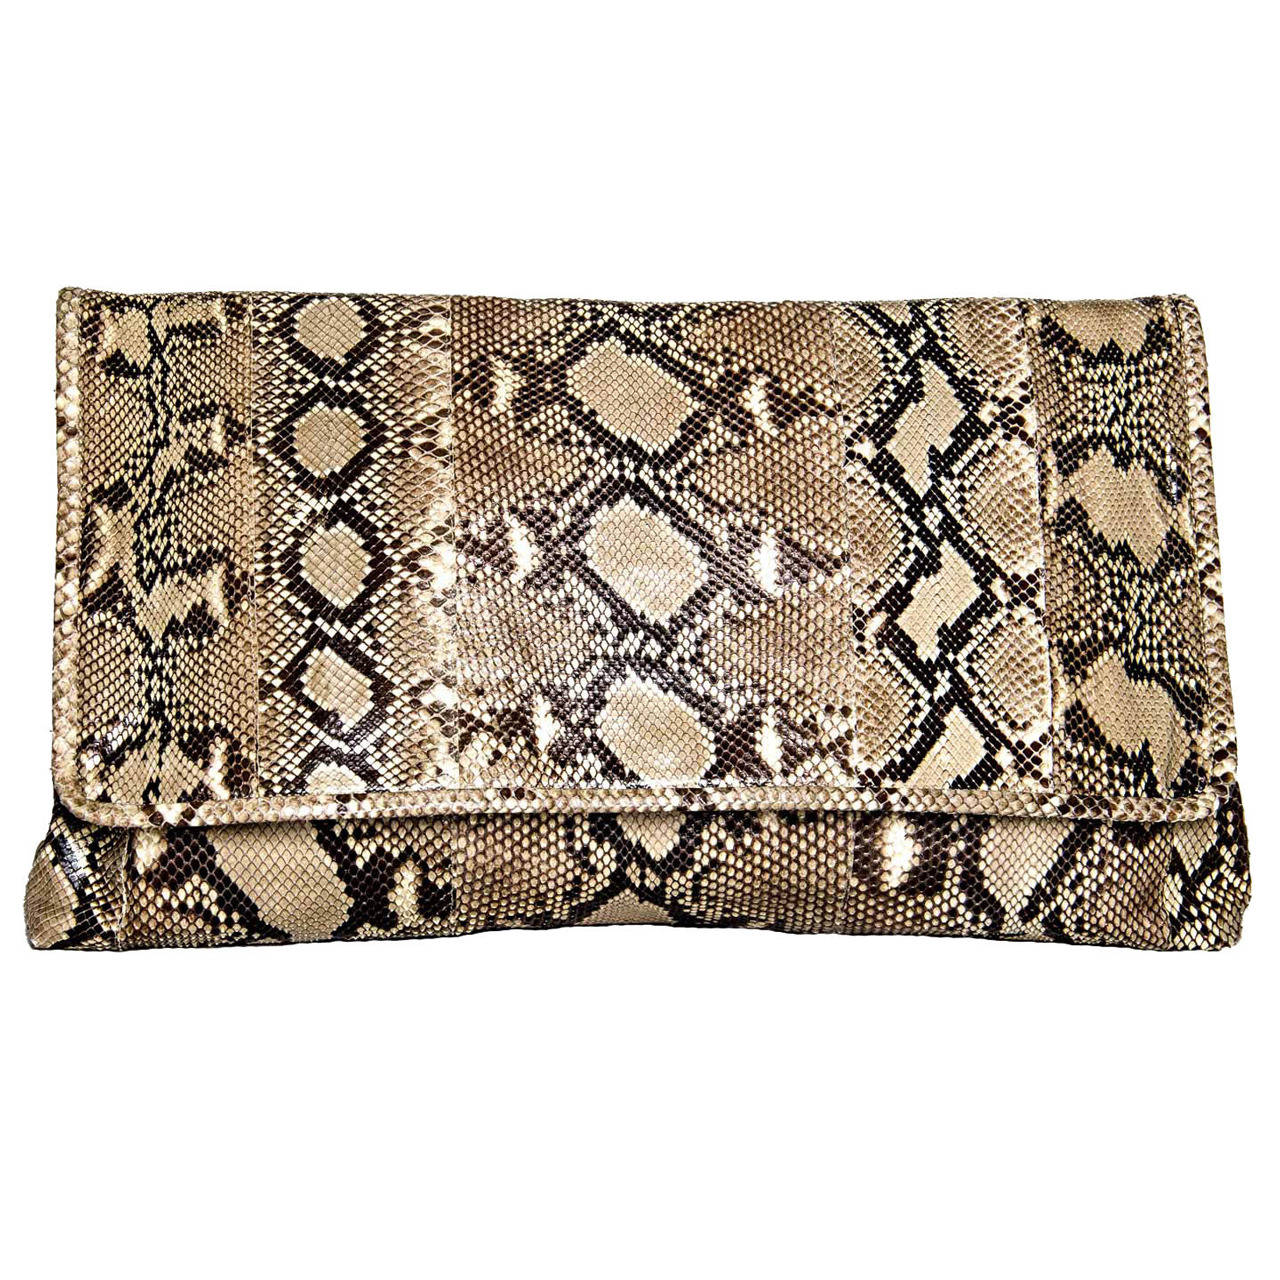 bag prada red - Prada Bag Python Large Clutch For Sale at 1stdibs